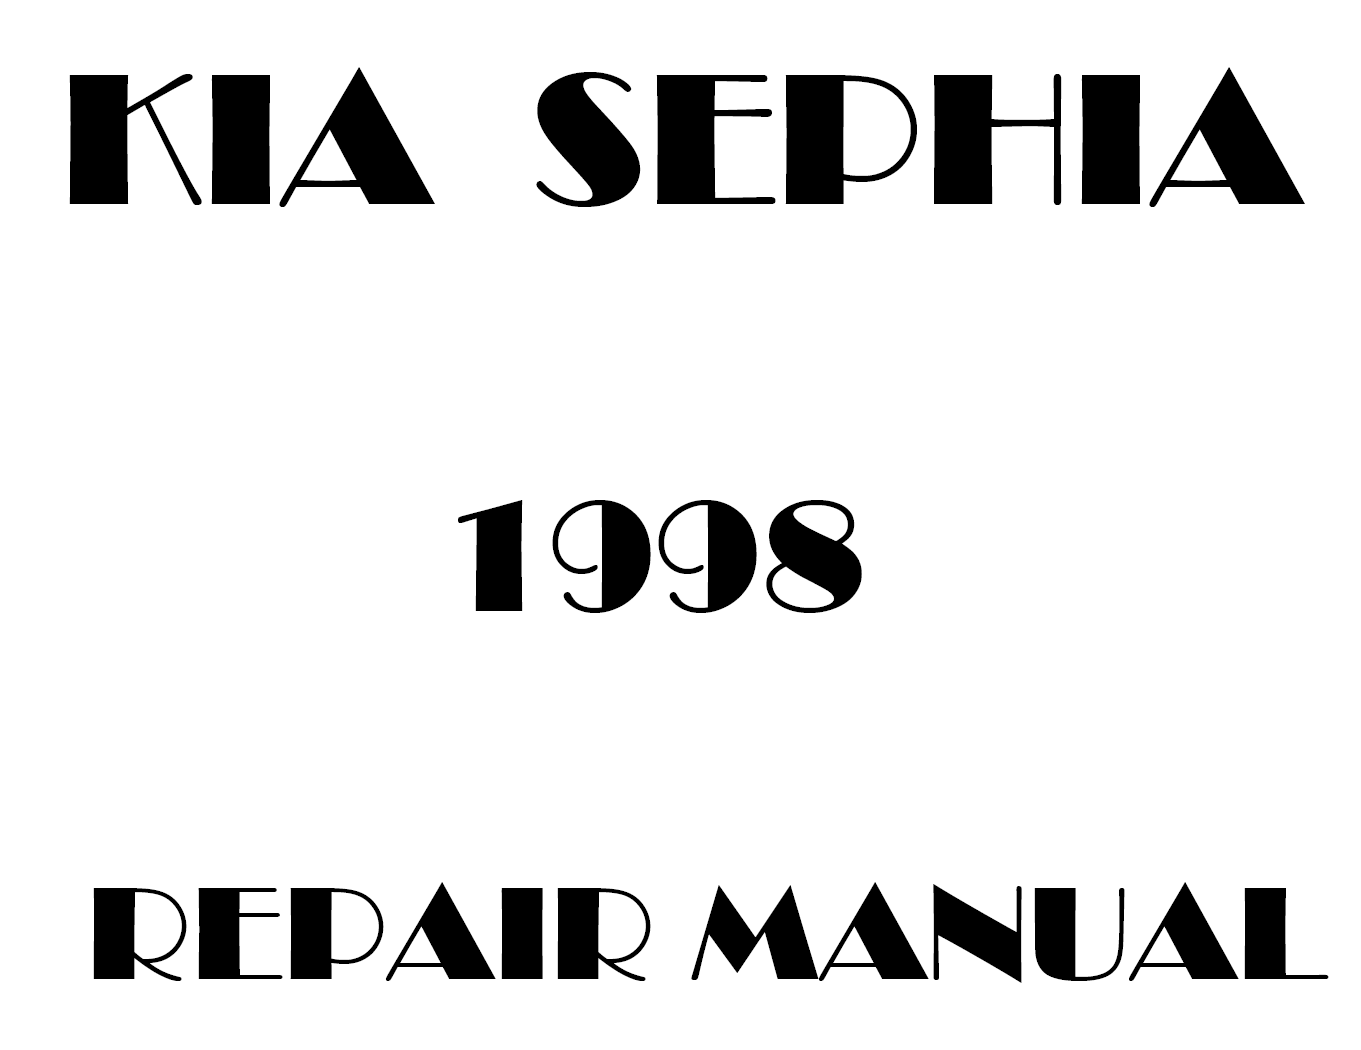 1998 Kia Sephia repair manual